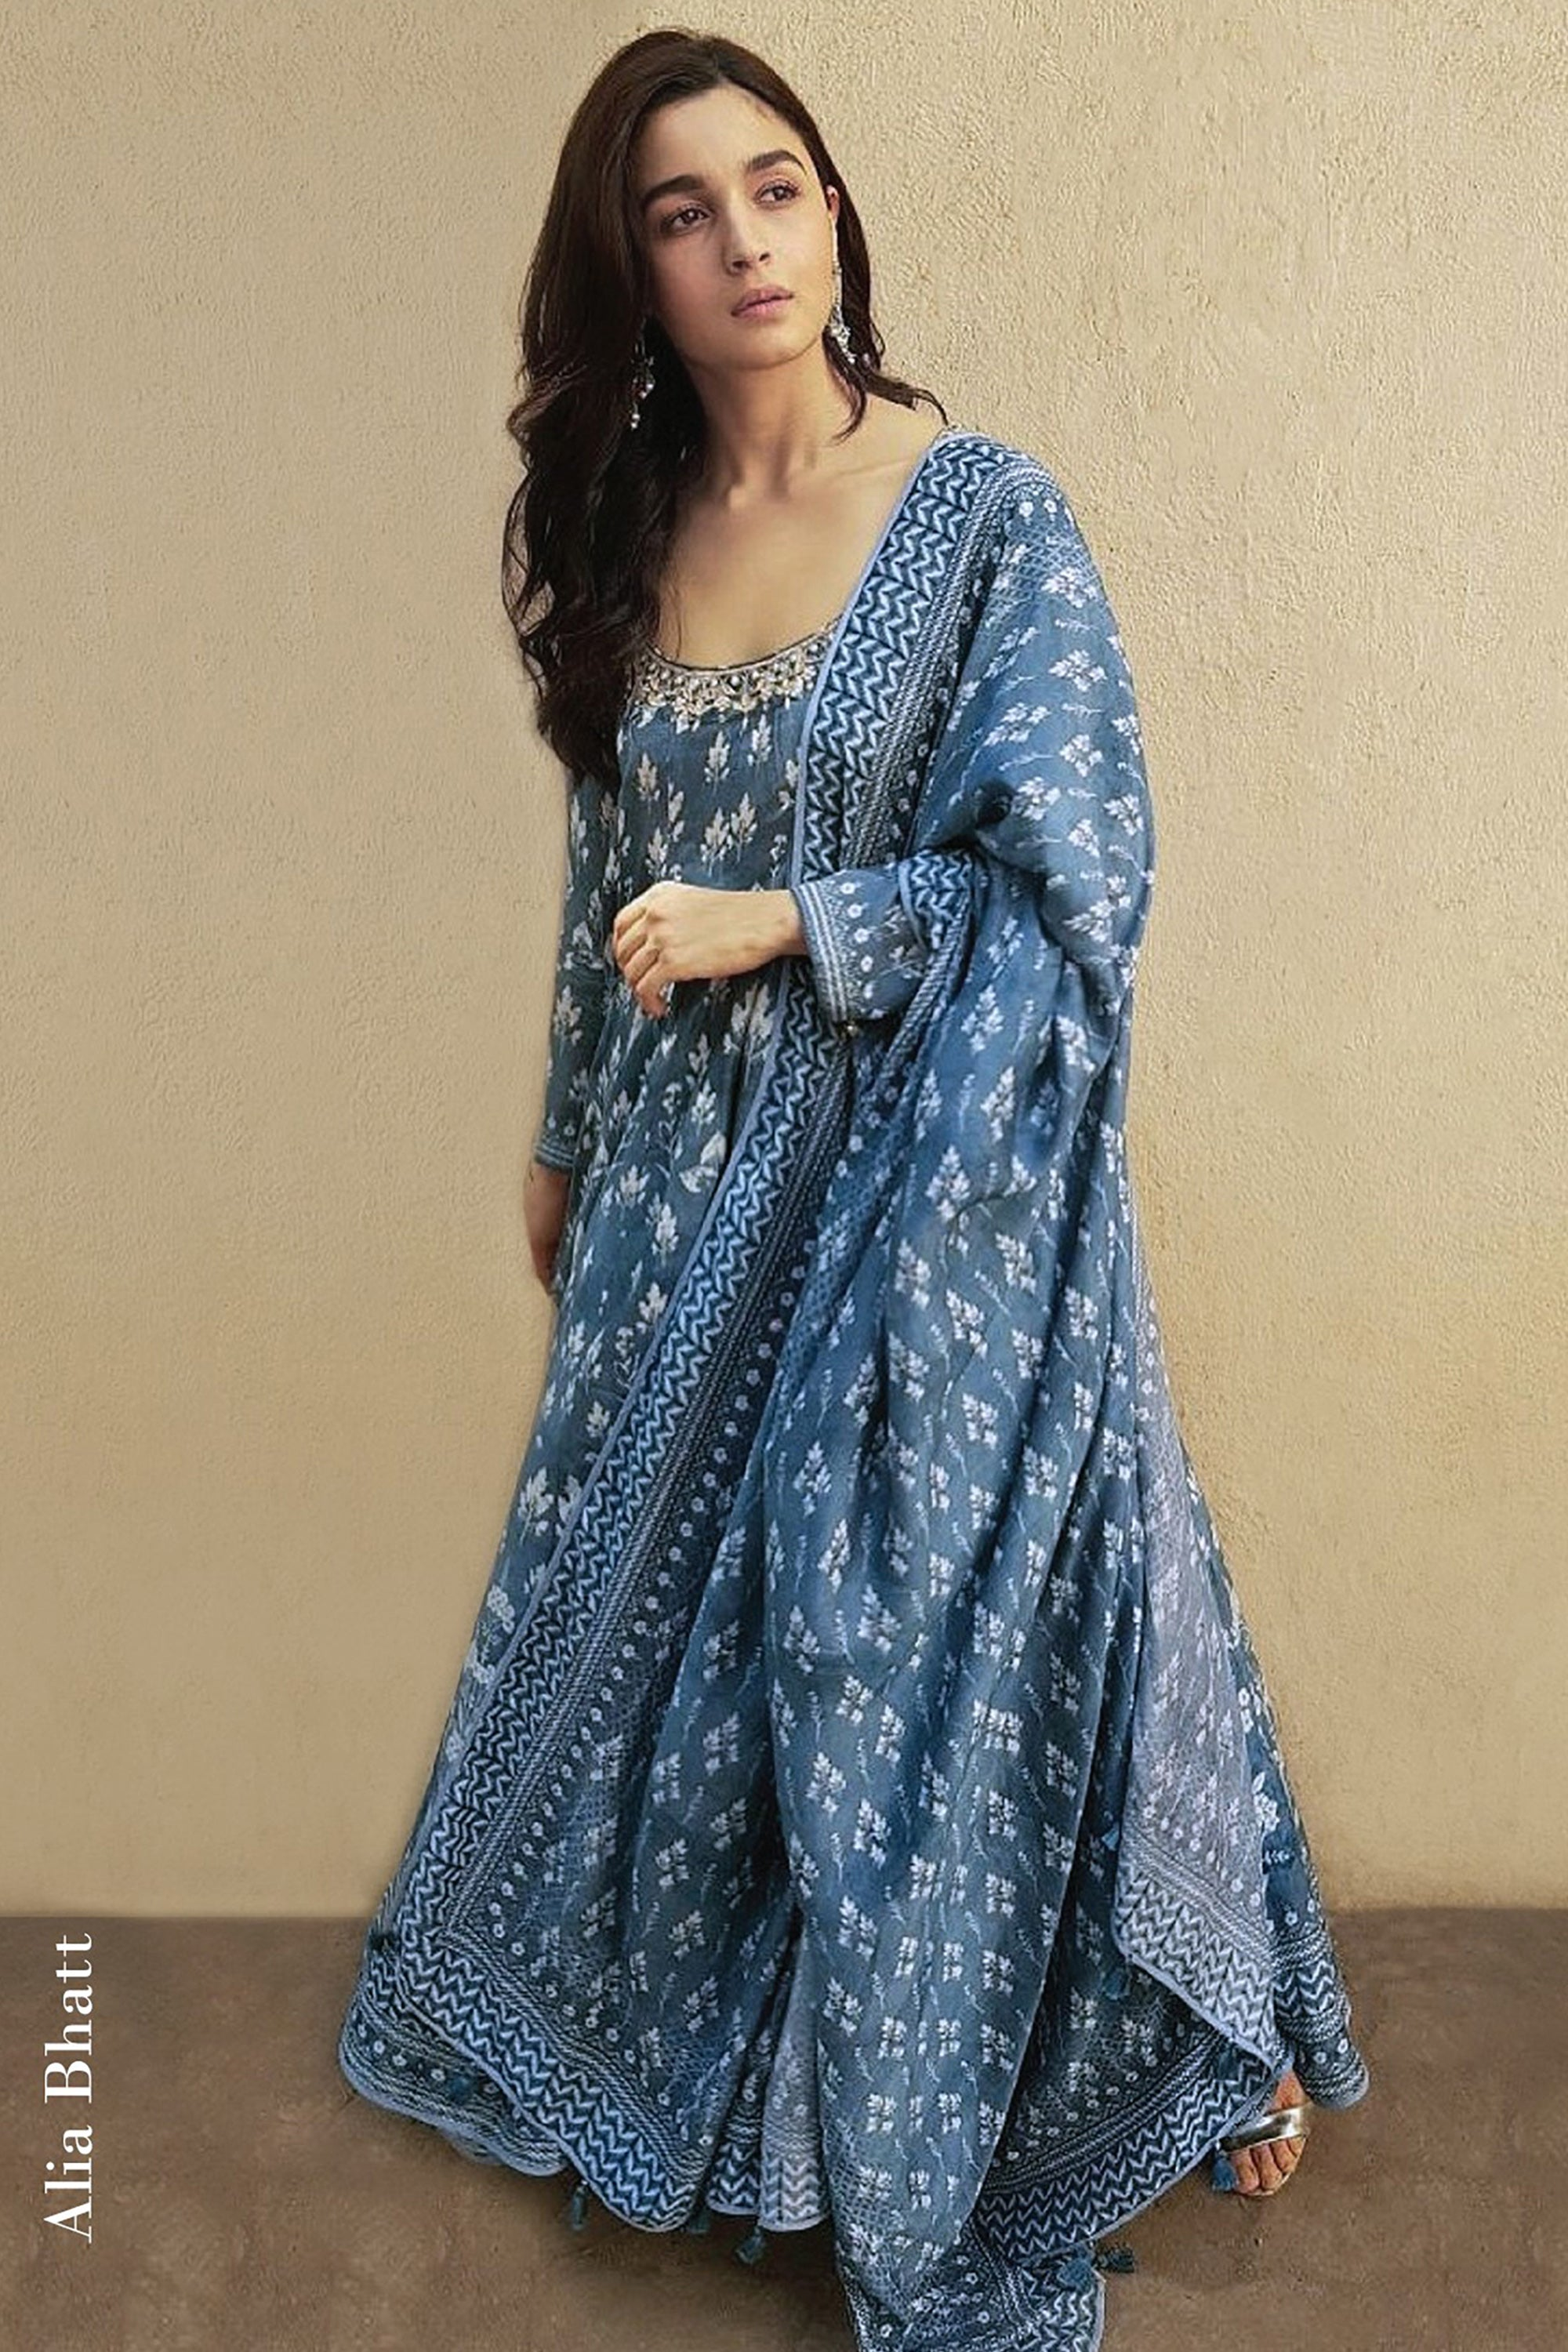 Blue Kairavi Suit As sen On Alia Bhatt